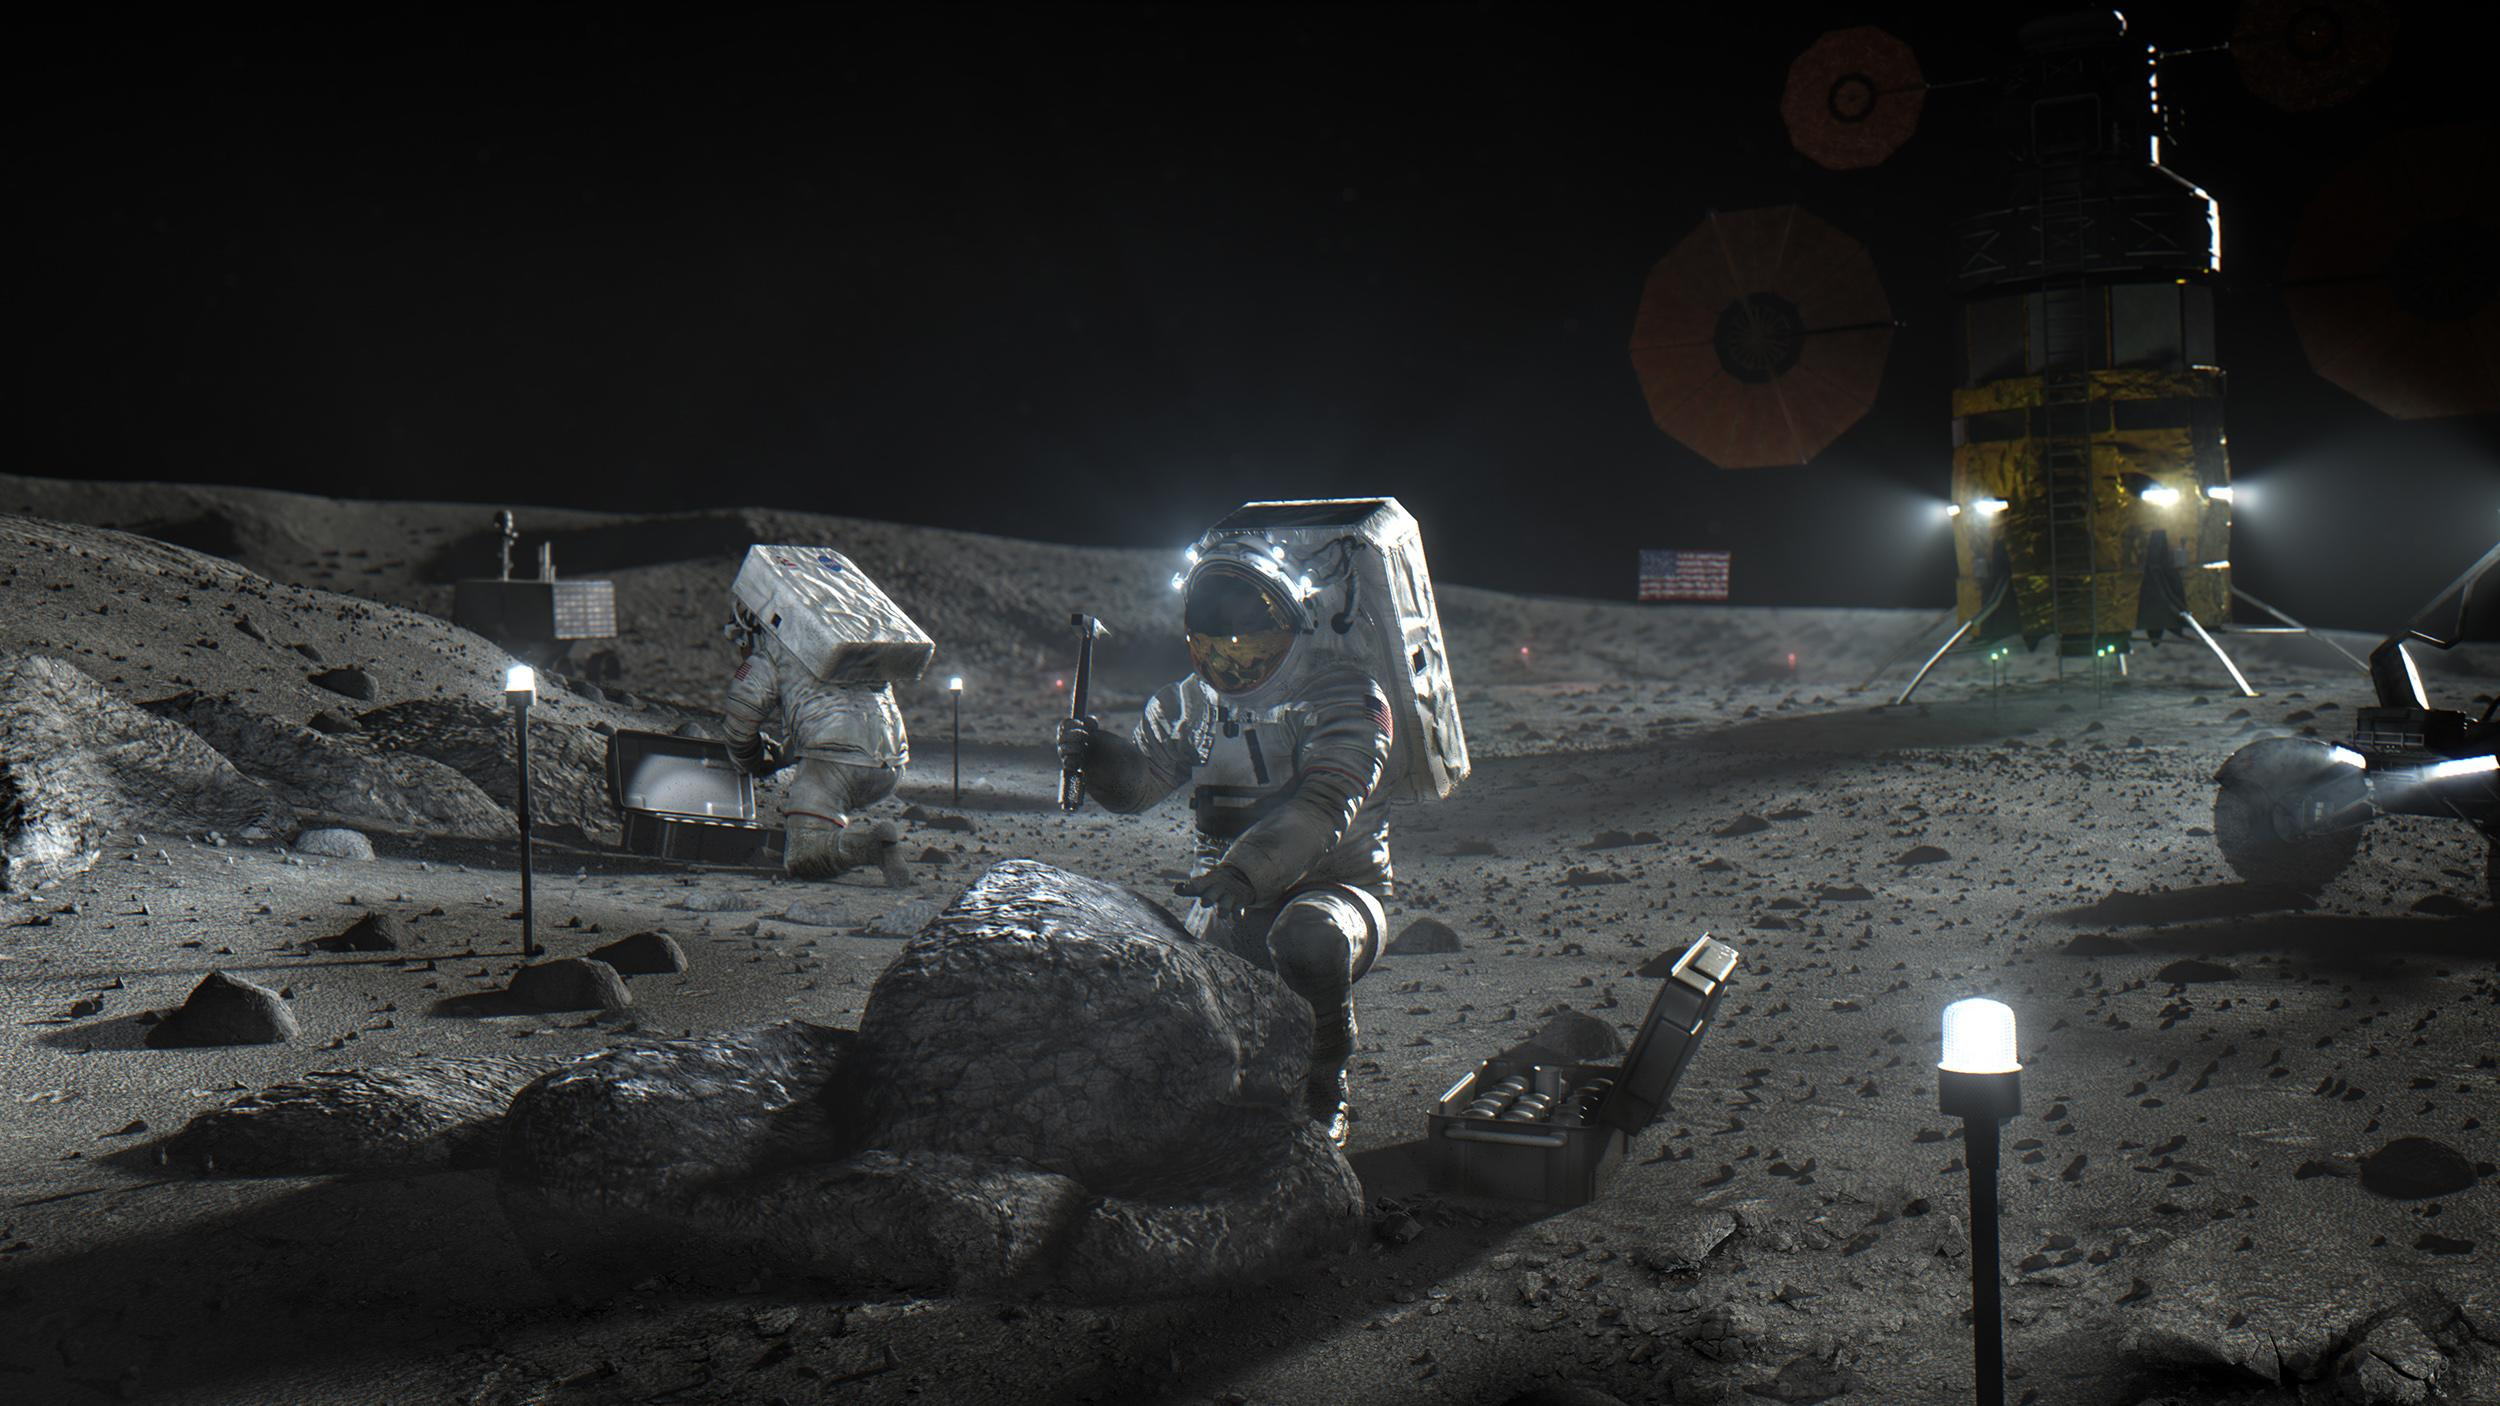 NASA still targeting moon's south pole for 2024 crew landing